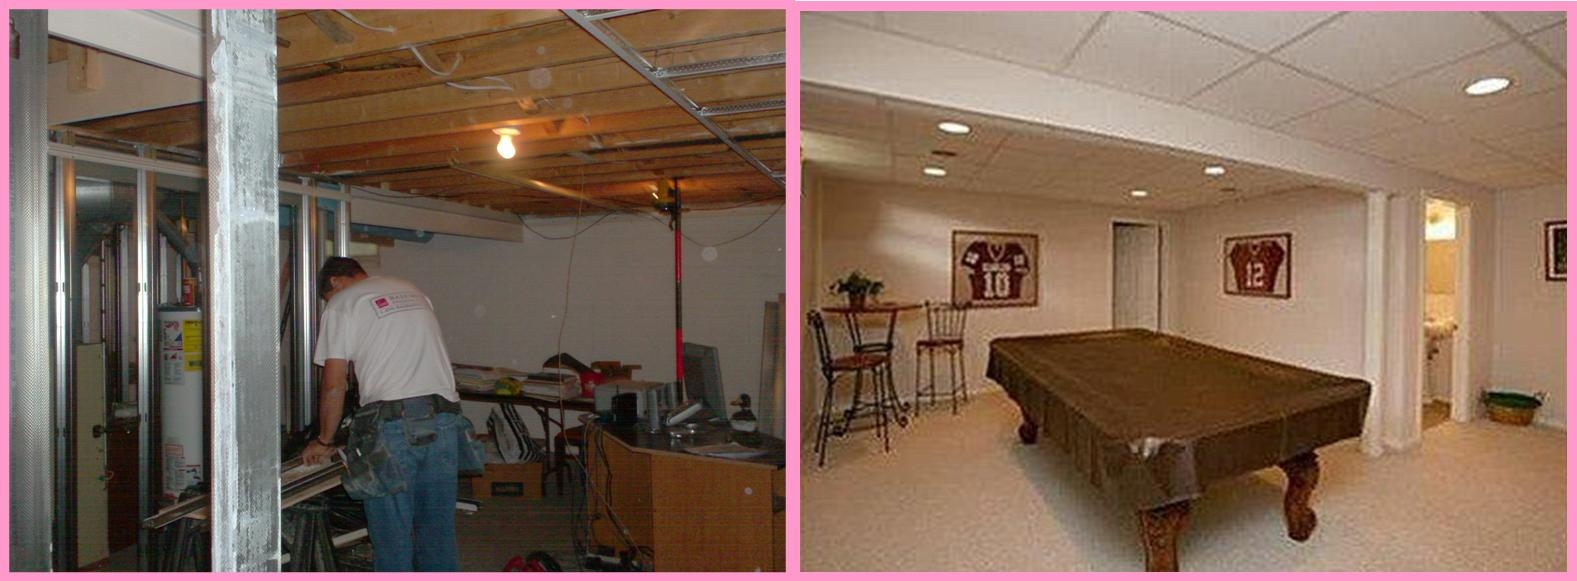 Finished Basement Ideas Before And After Pictures